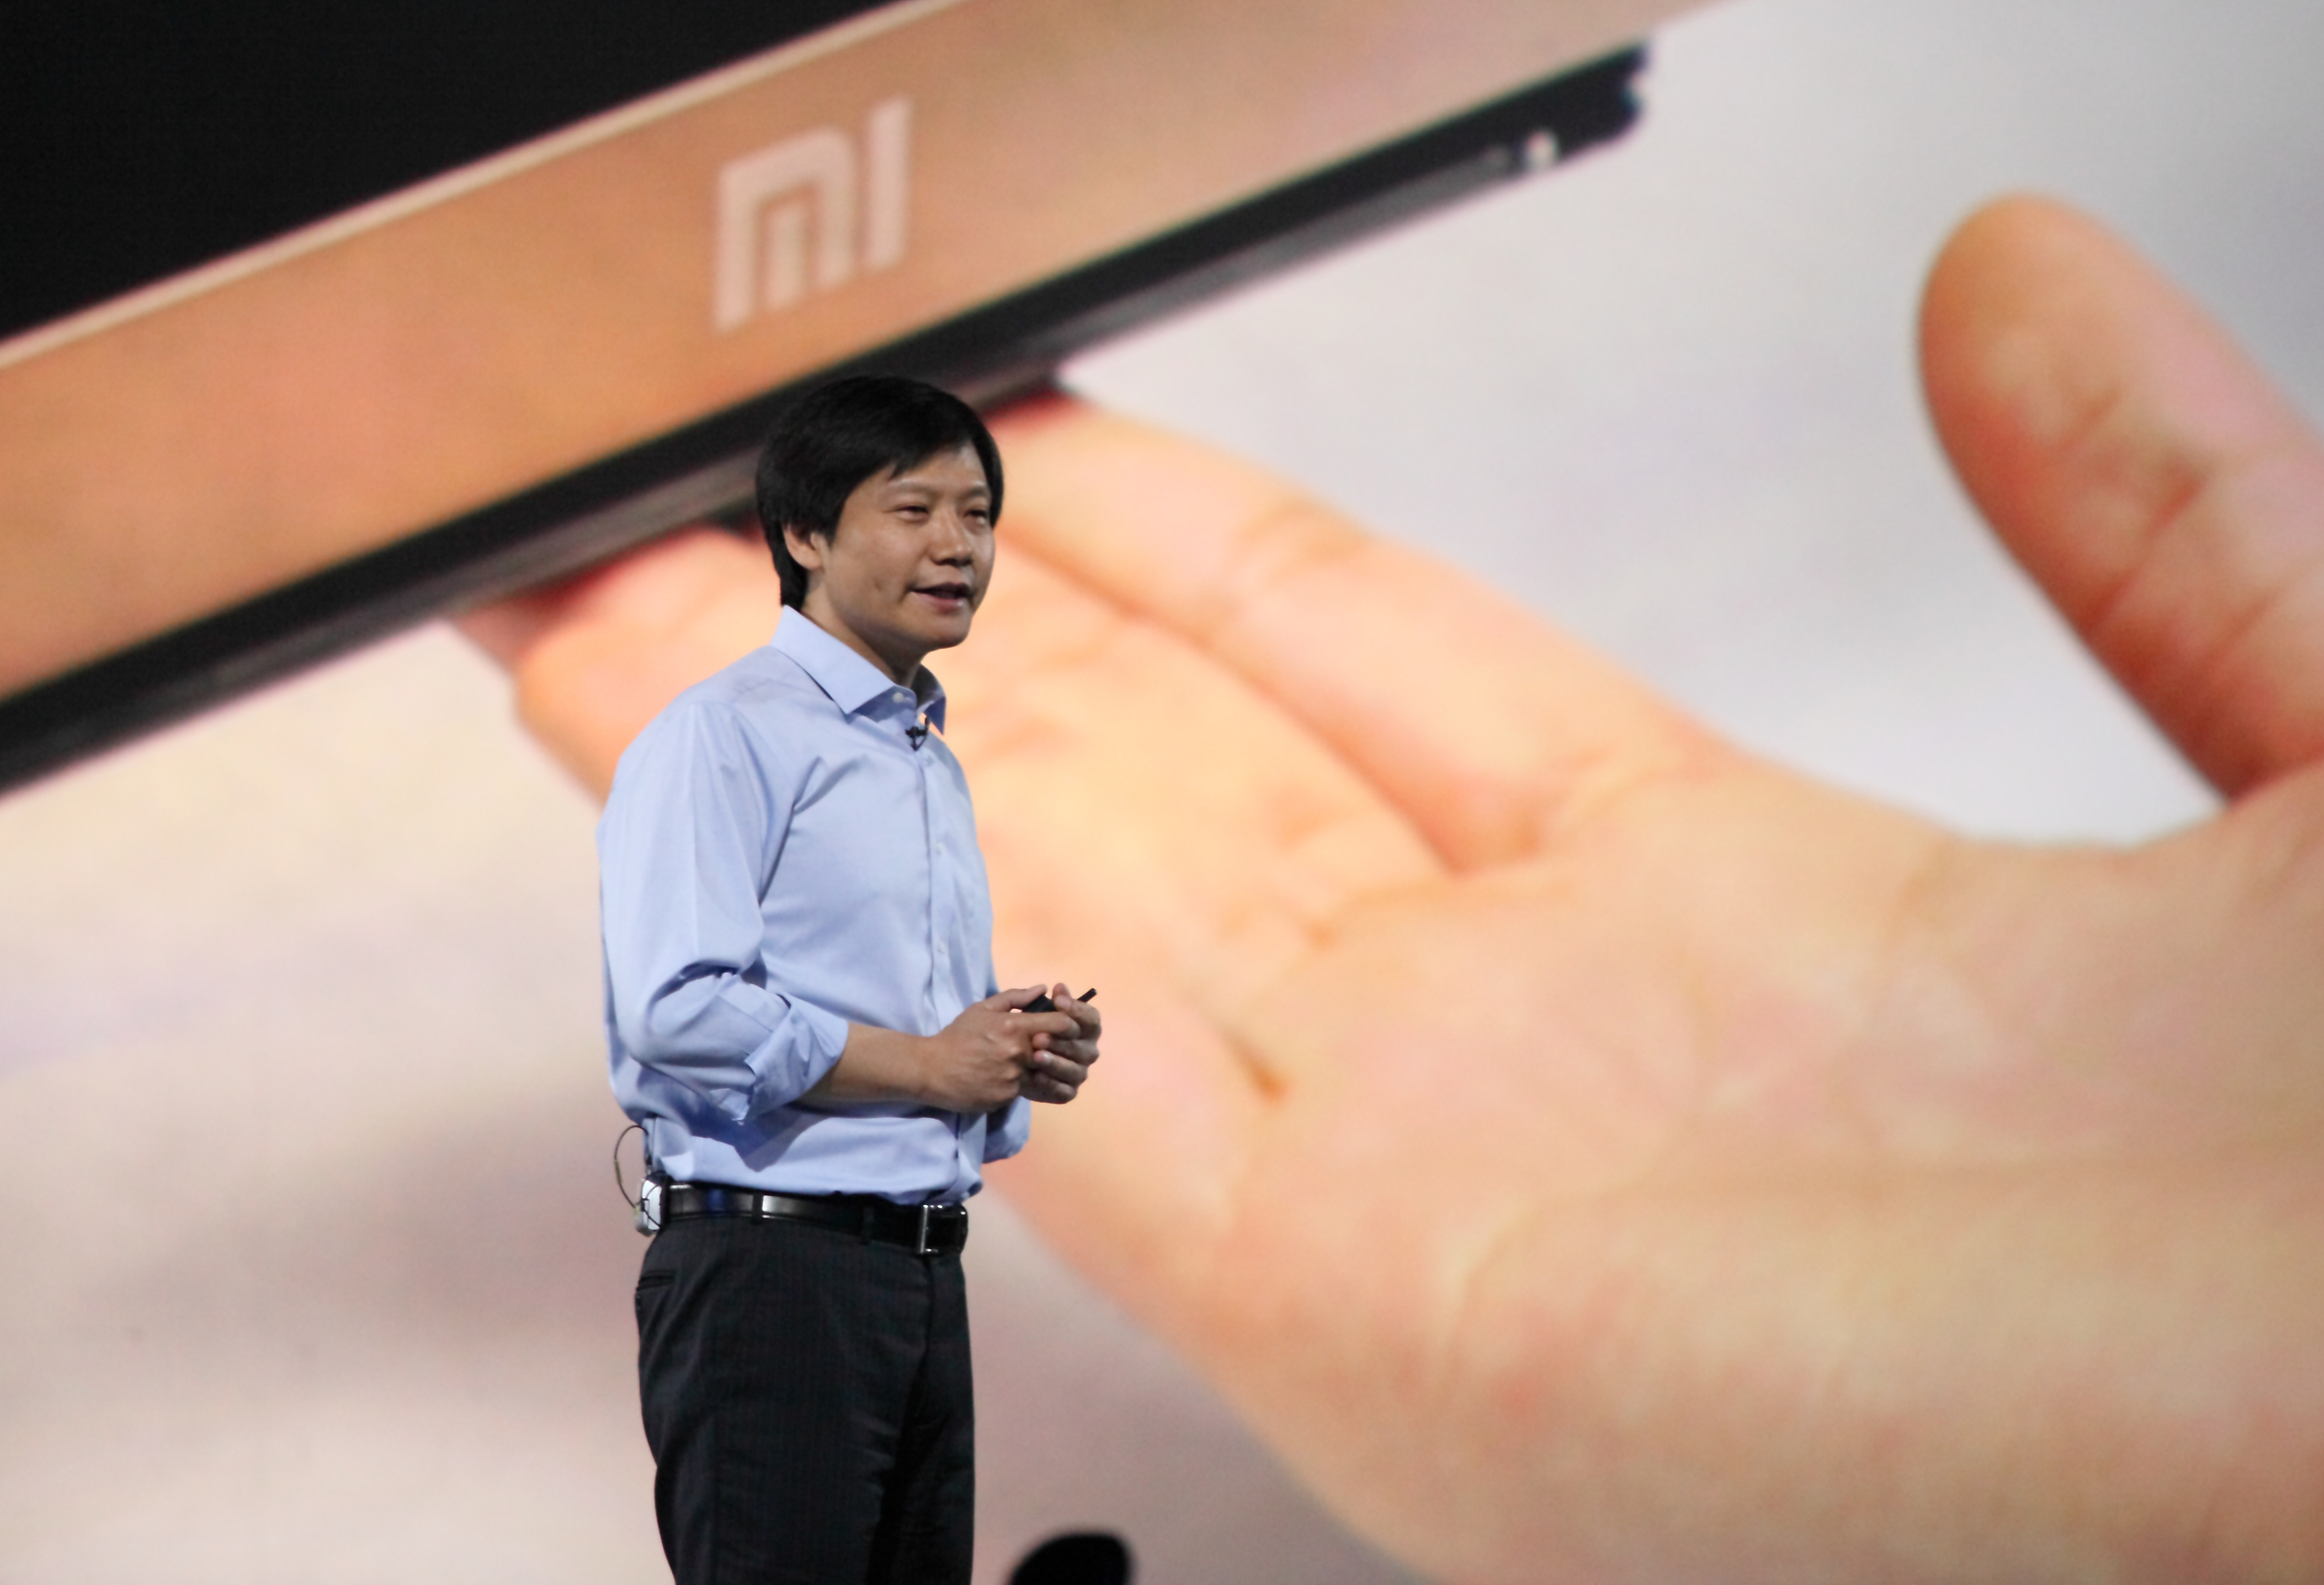 New Xiaomi Mi 4 LTE Smartphones Are Sold With Spyware, Say Researchers